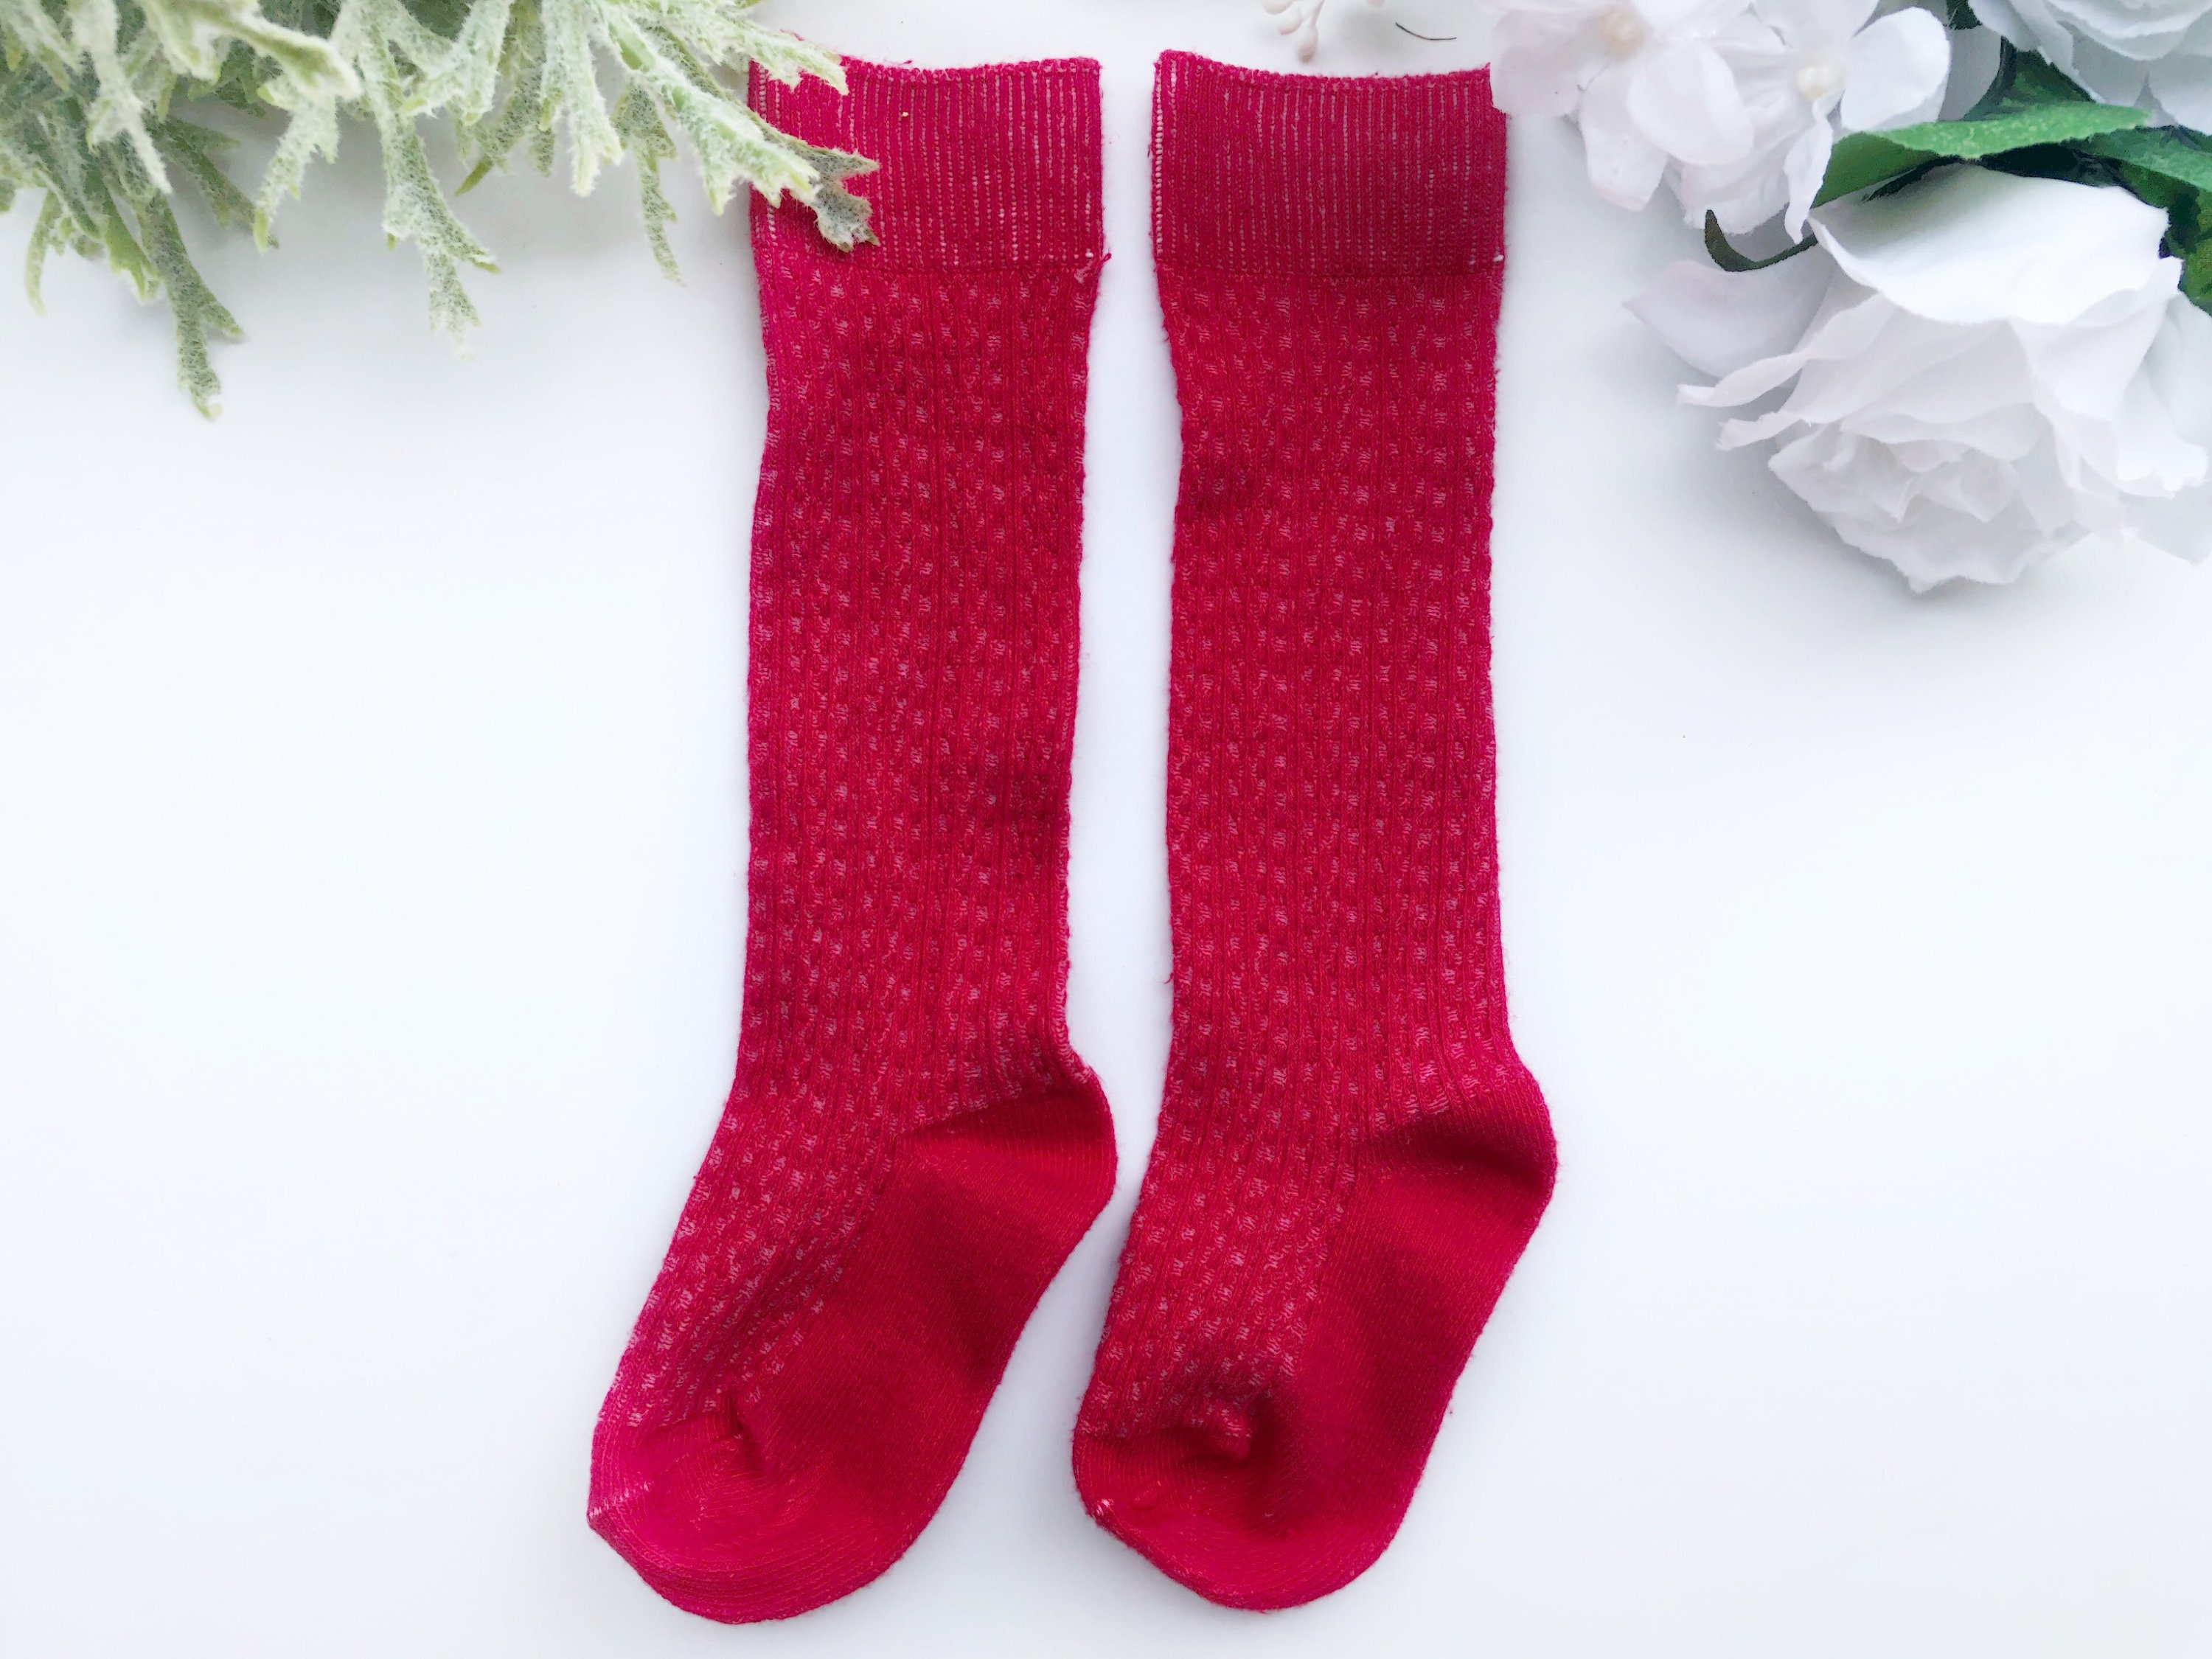 c40506d8b Red Kids Knee High Socks Cable Knit Hand Dyed Socks Baby Girls